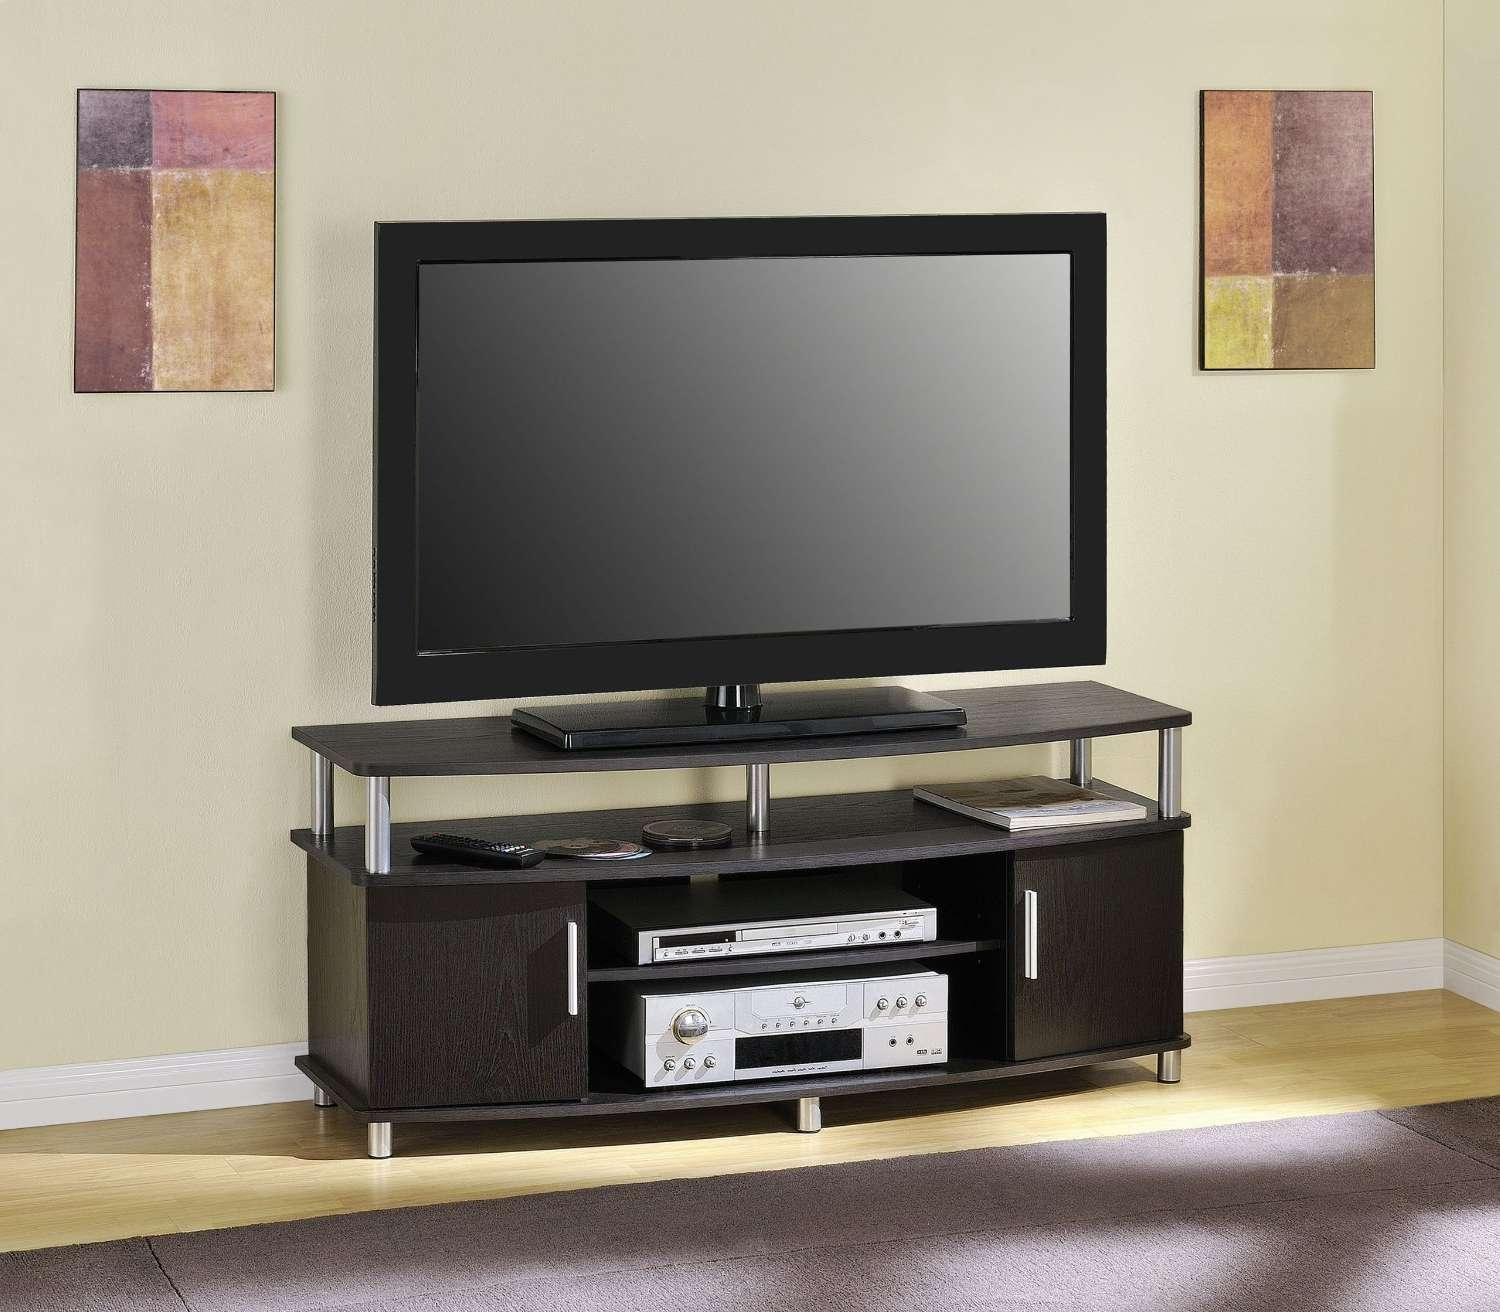 Tv Stands: 7 Best Selling Flat Screen Tv Stands 2017 Inside Modern Tv Cabinets For Flat Screens (View 16 of 20)